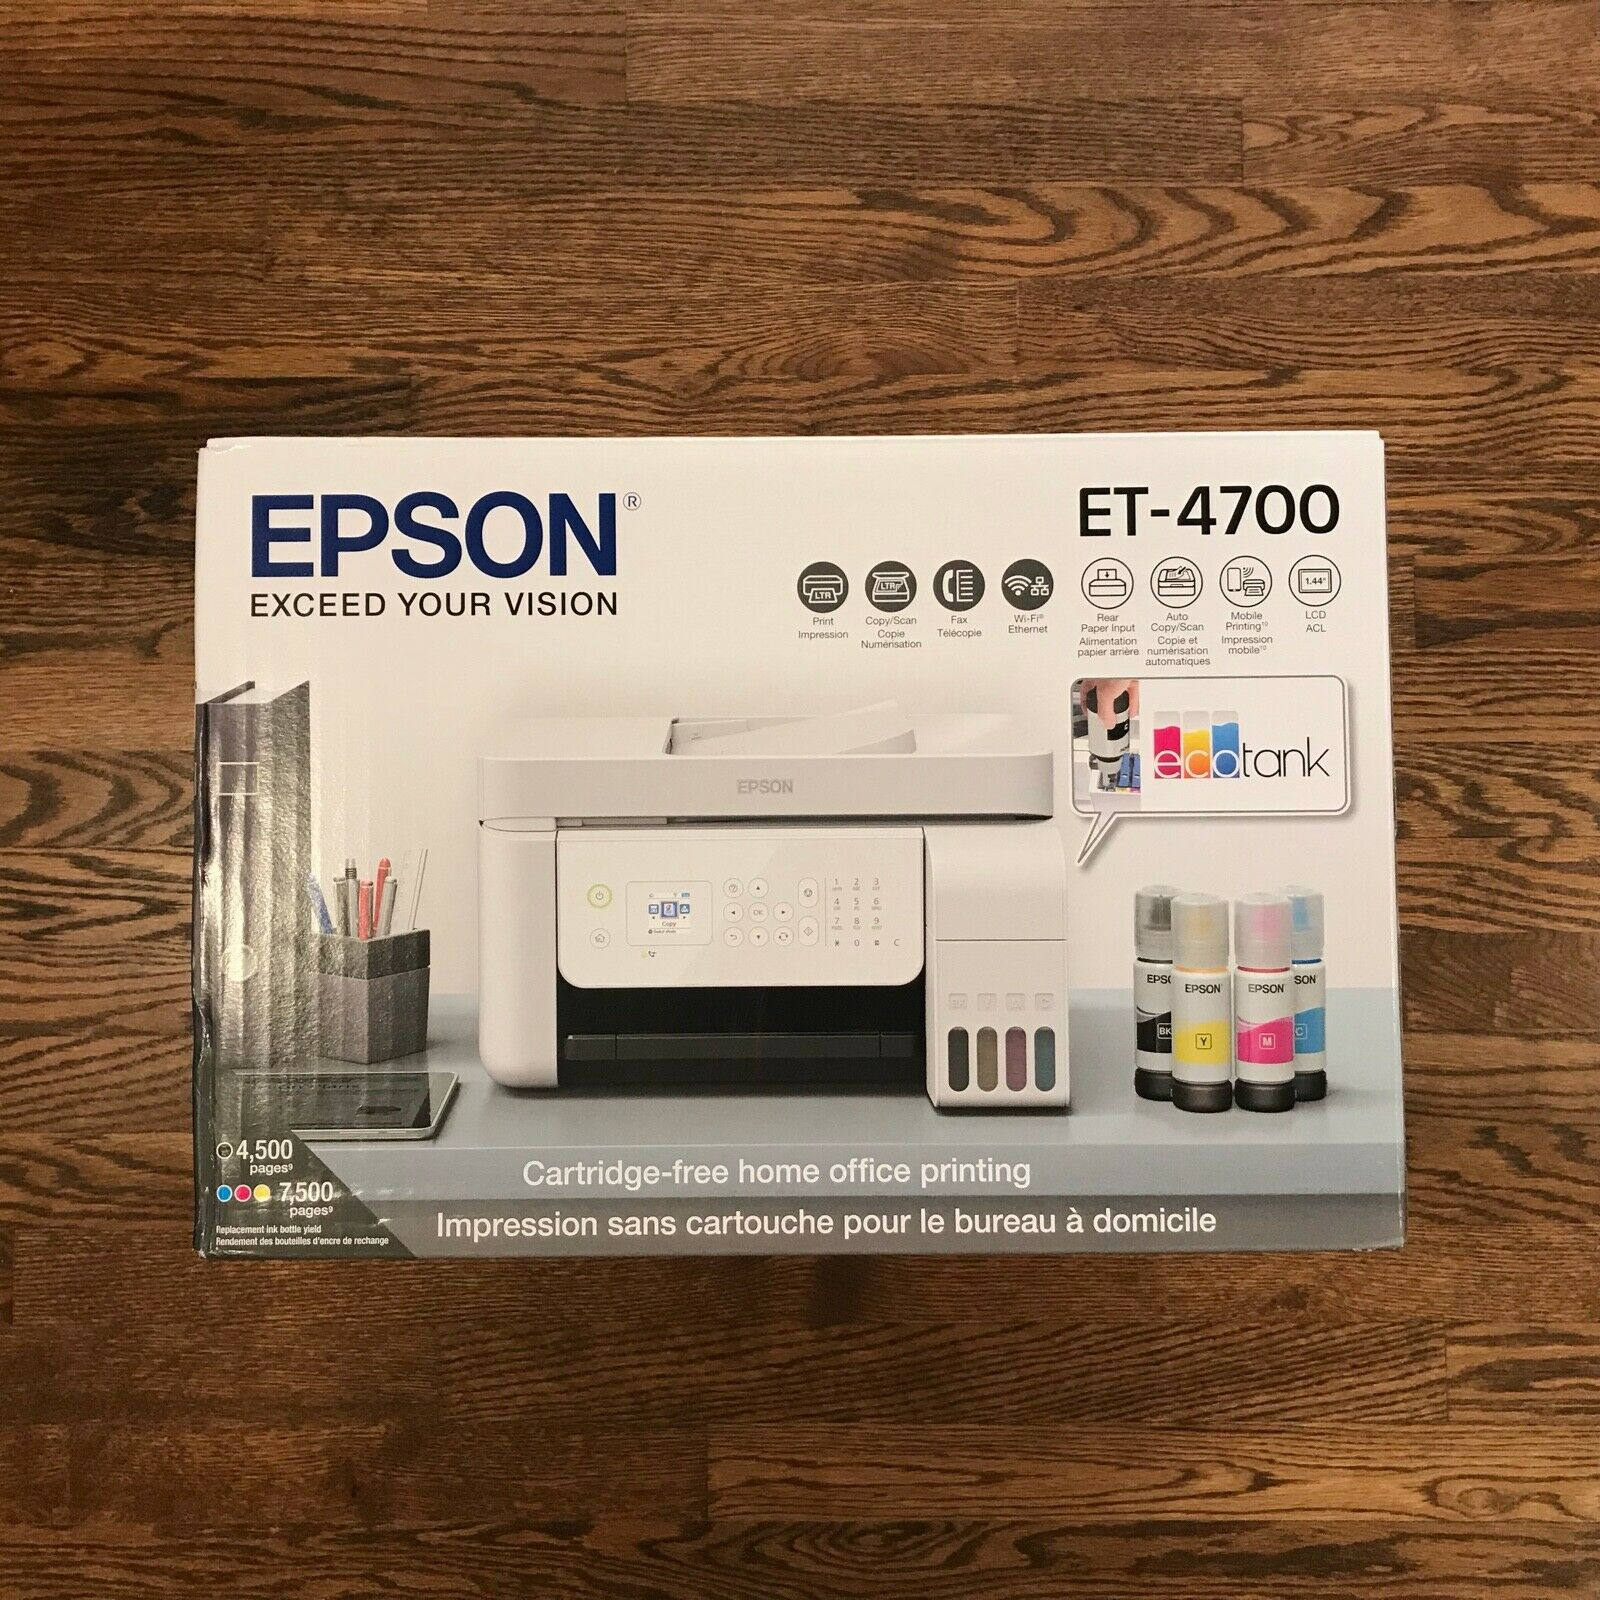 New Sealed Epson EcoTank ET-4700 Wireless All-in-One Color S